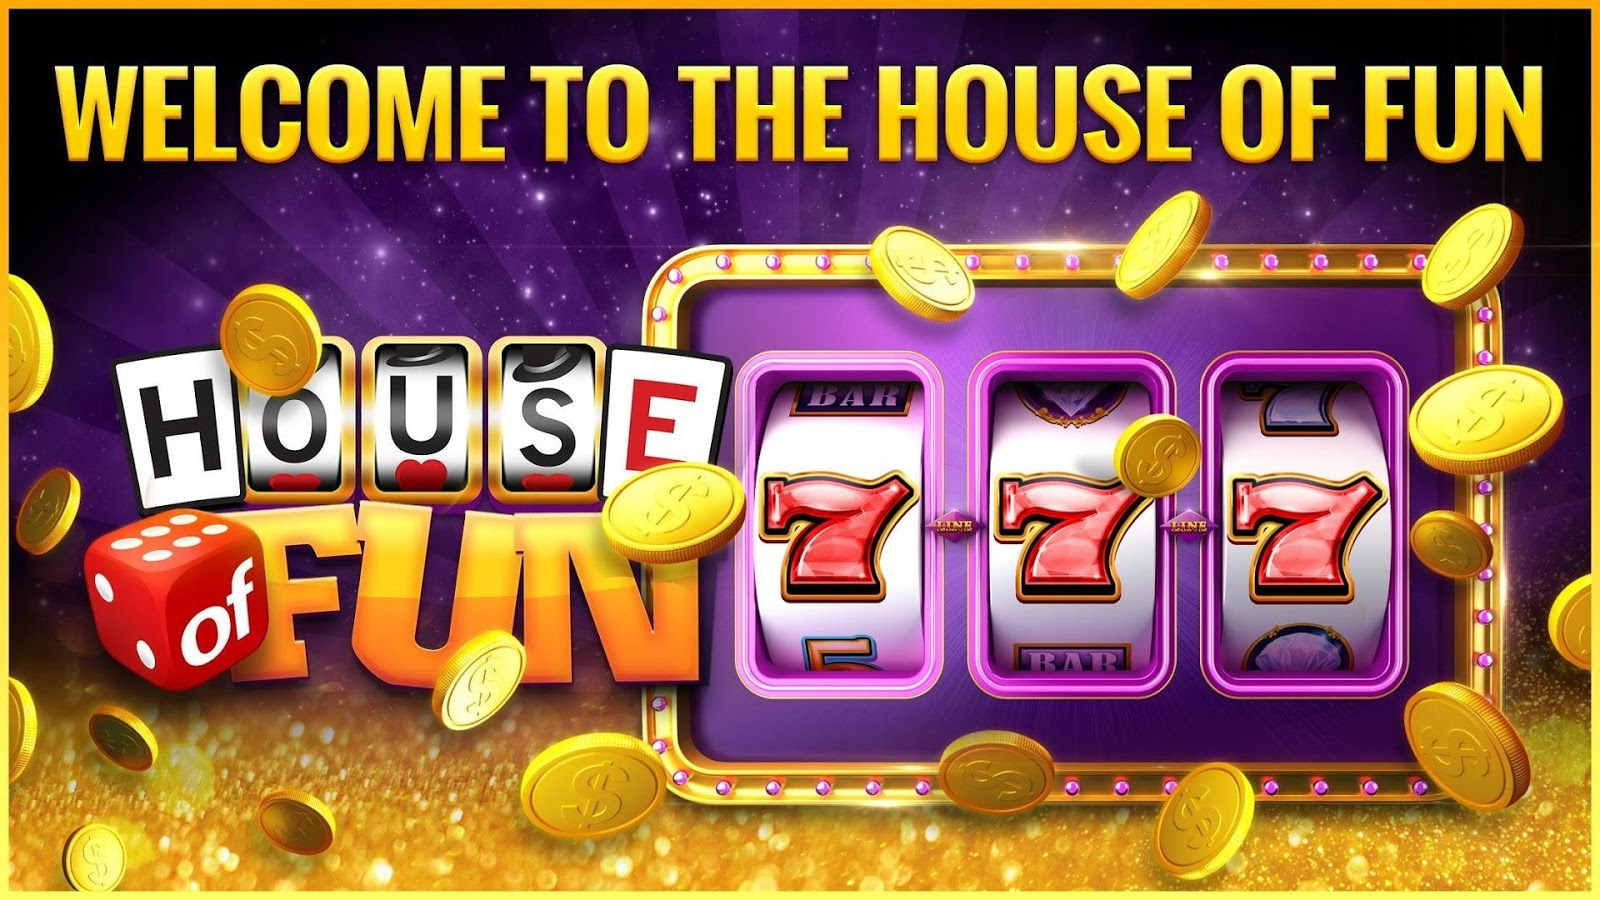 Free House Of Fun Slots